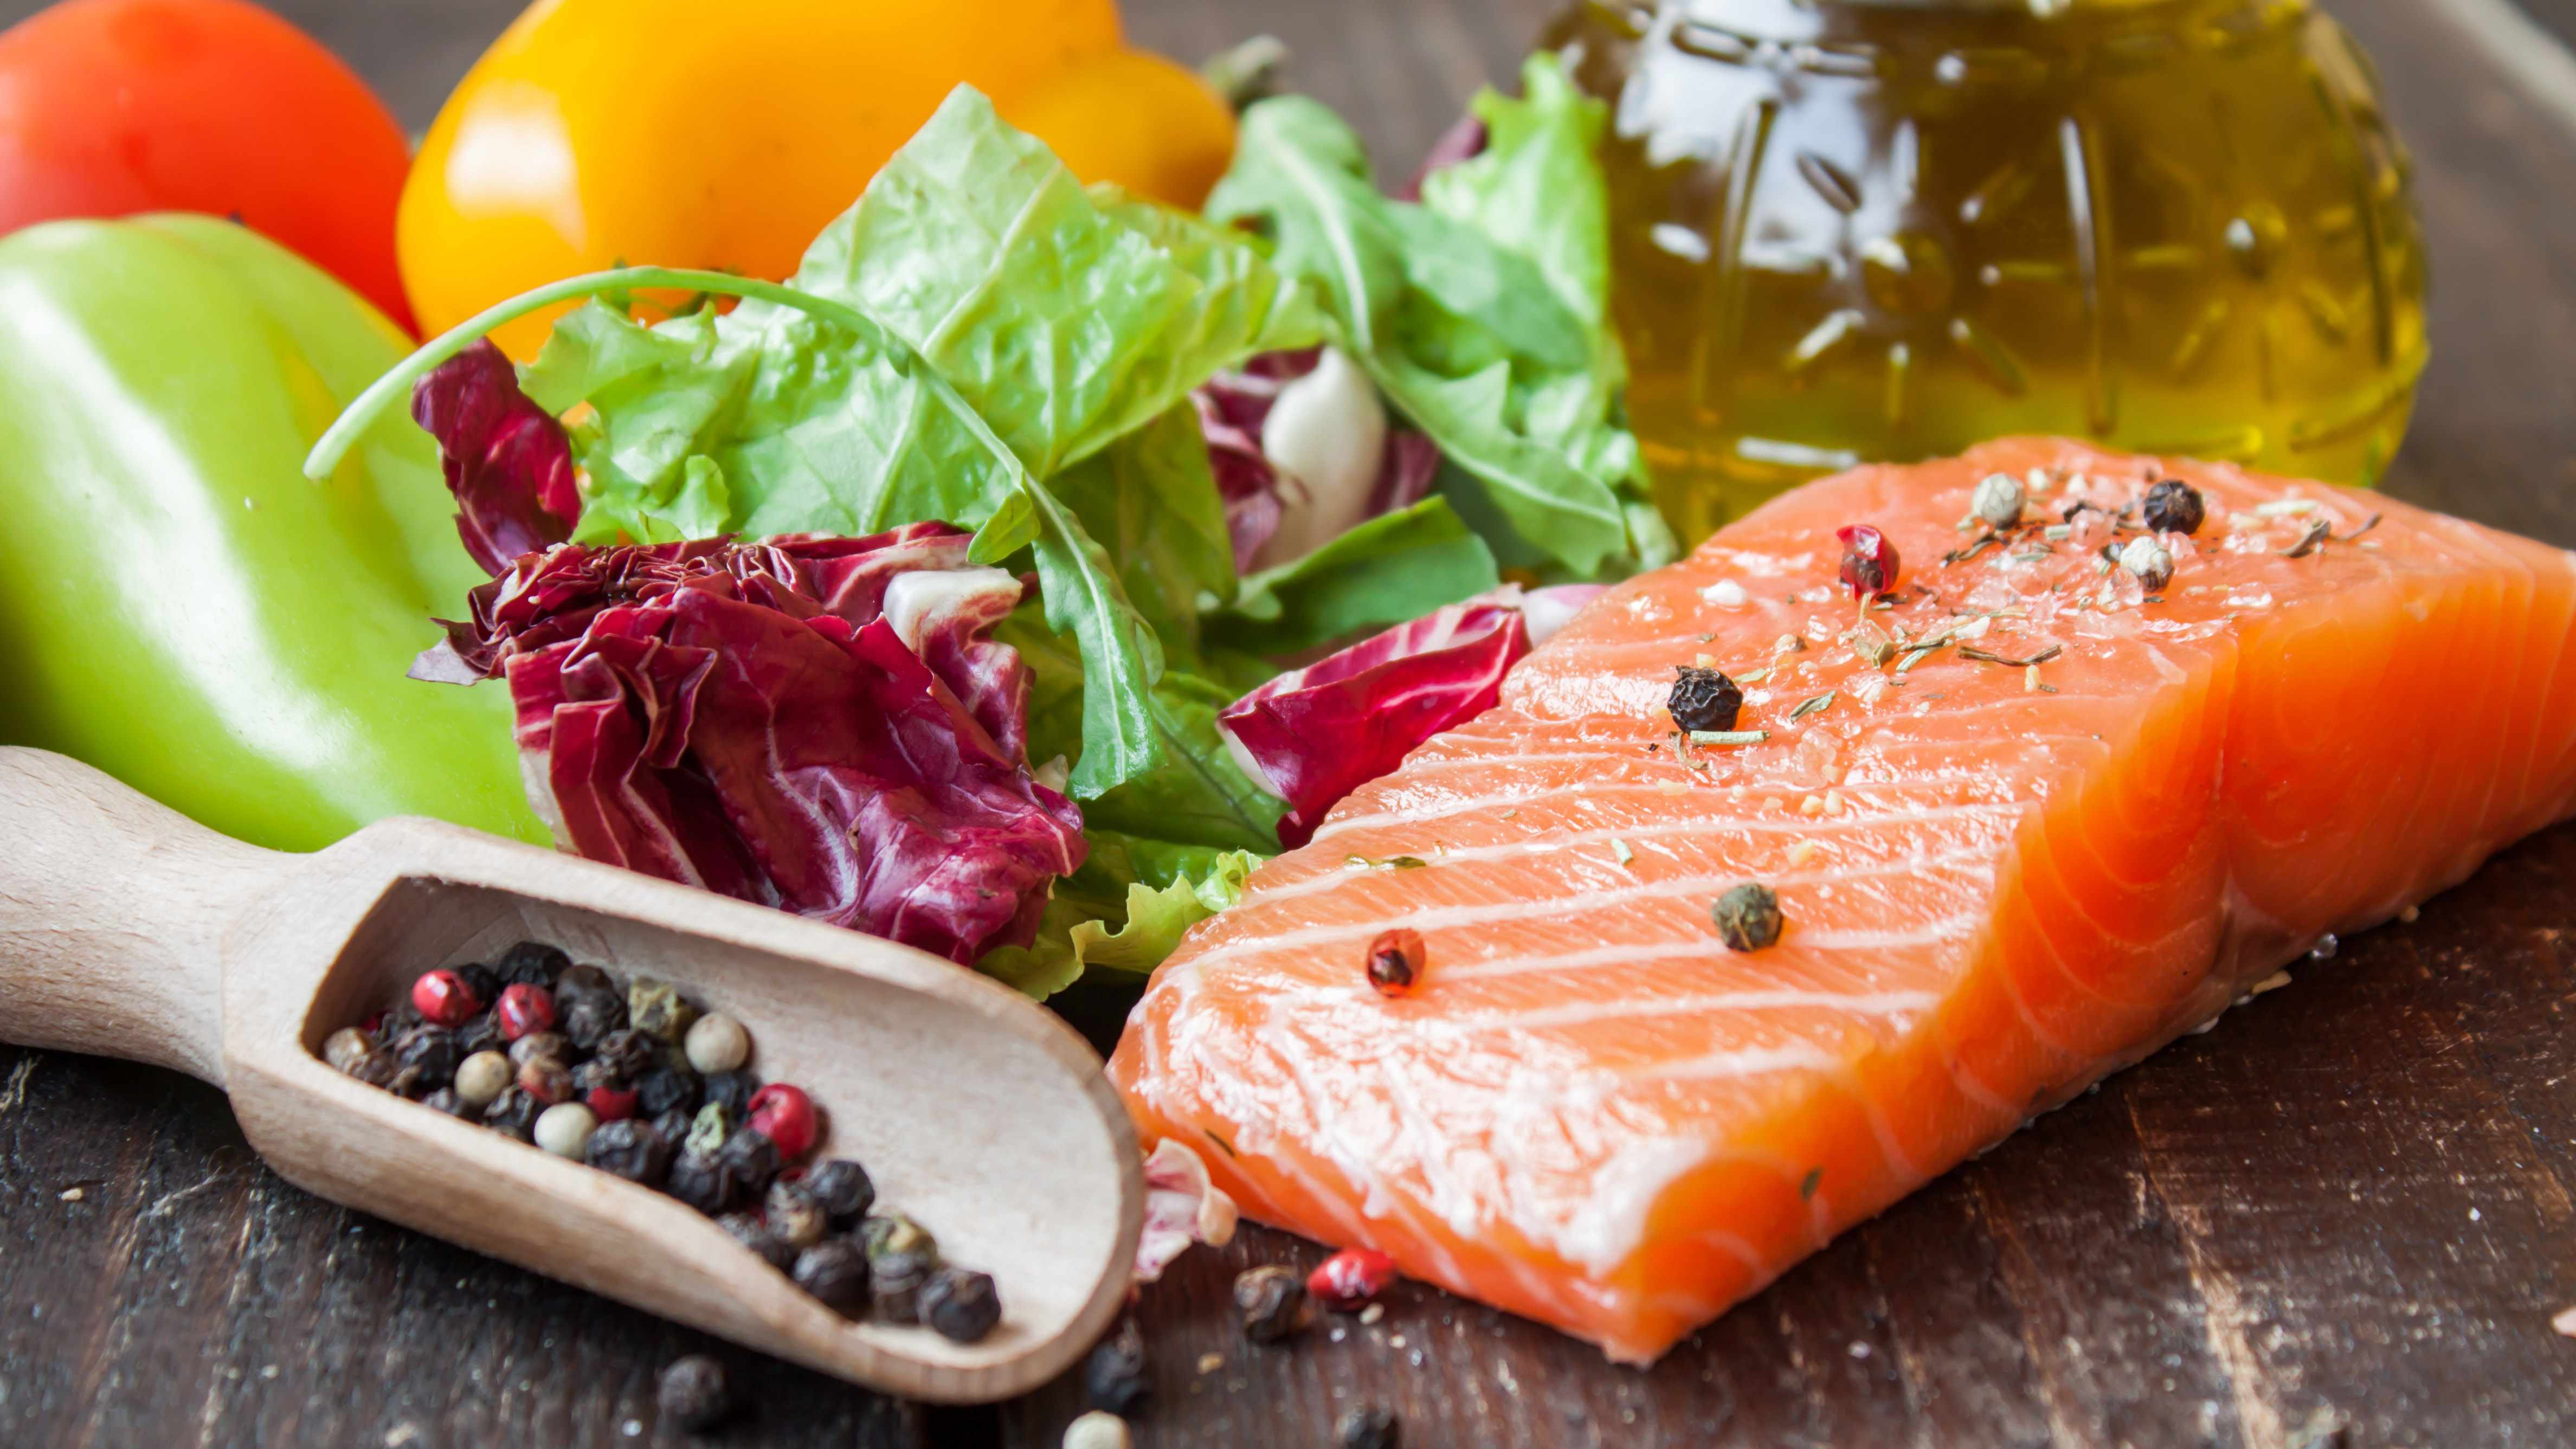 a sample mediterranean diet with fish, nuts, fruits and vegetables